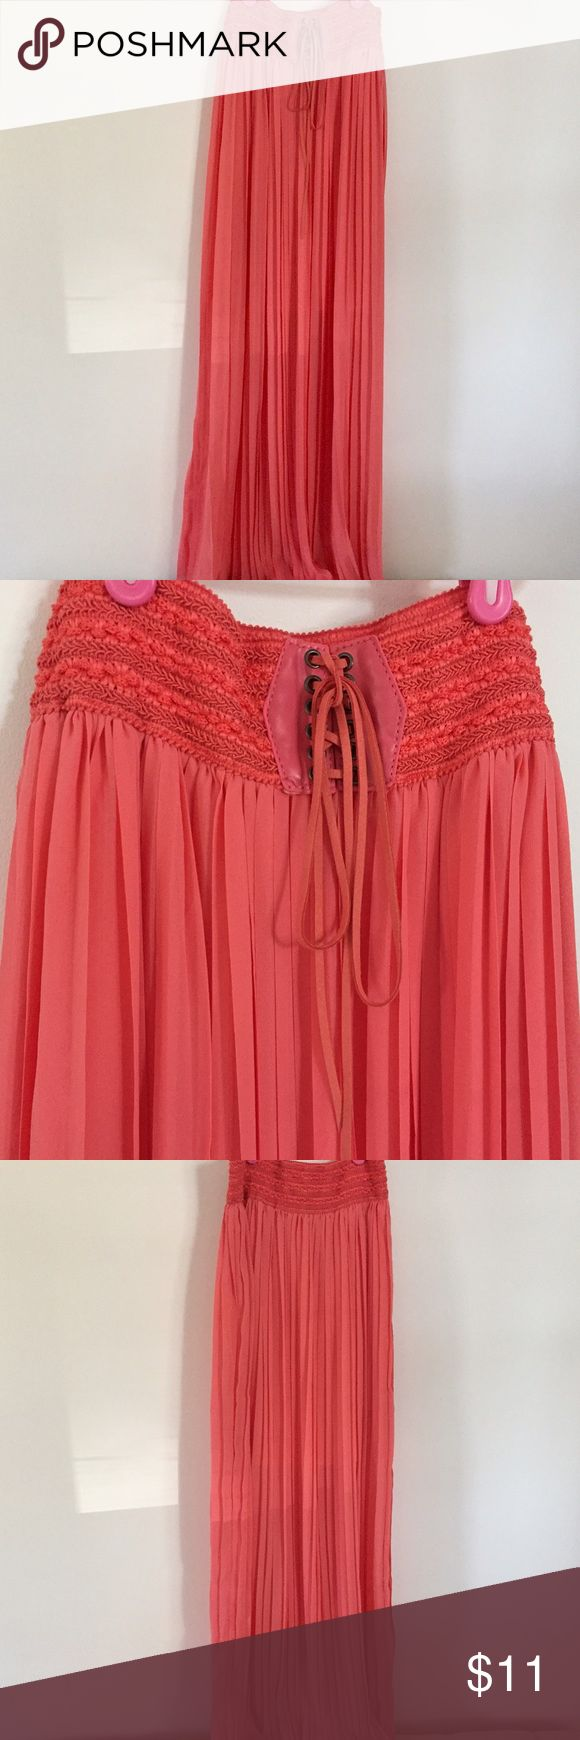 Coral Maxi Skirt, high waisted Never worn, in perfect condition! Coral pleated maxi skirt. Offers are welcome! Bundle for more savings :). Skirts Maxi